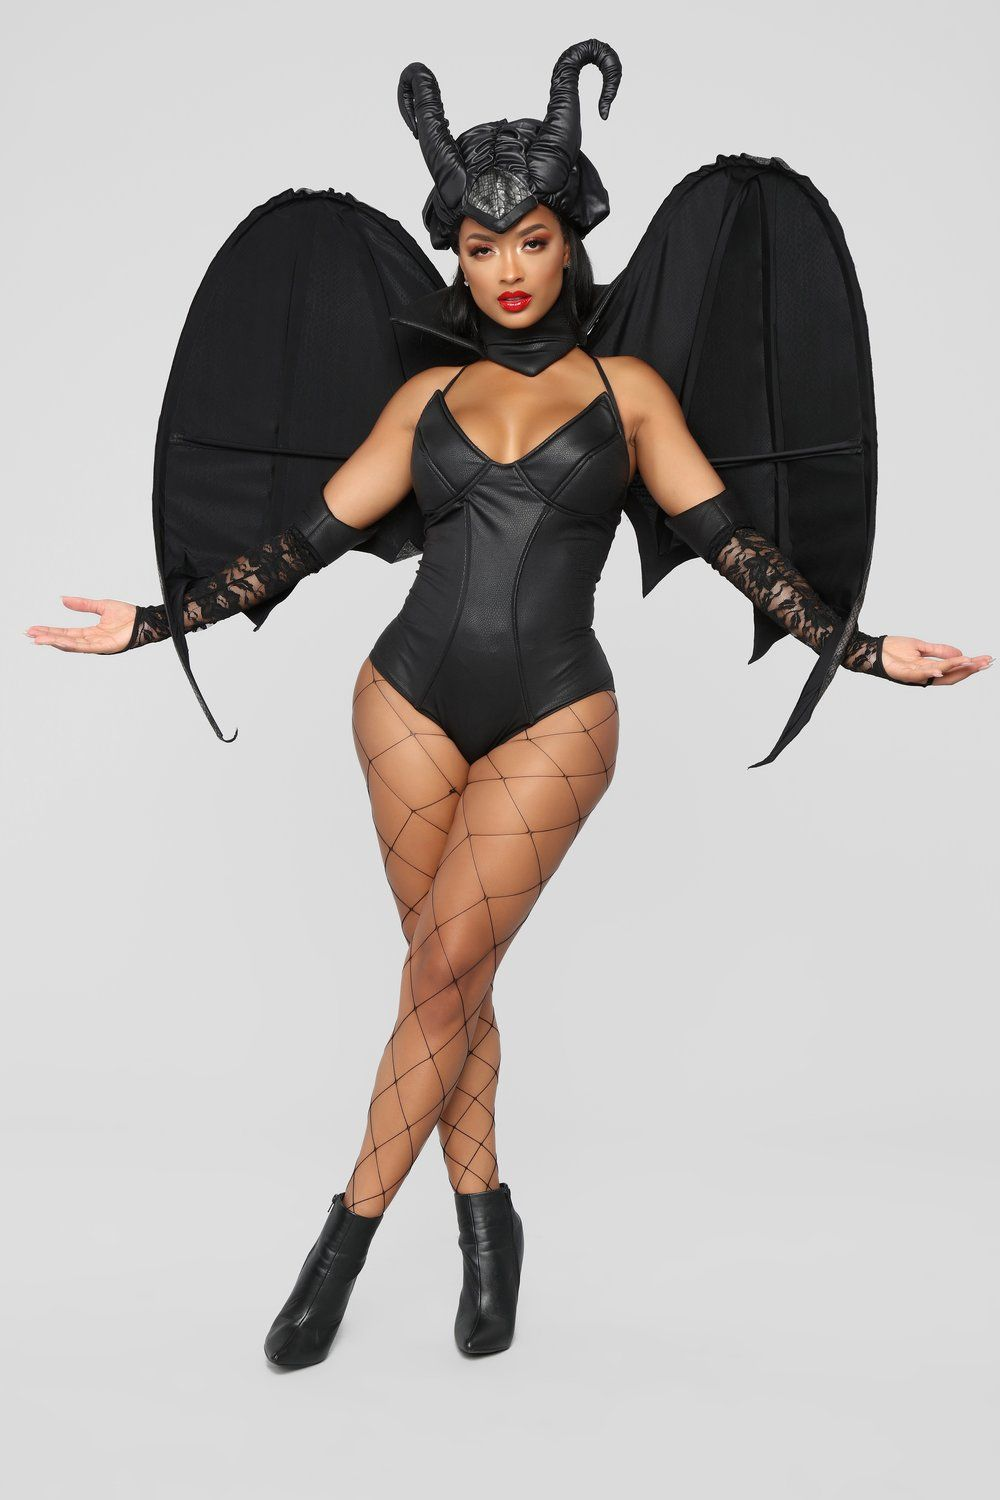 See Fashion Nova Halloween Costumes \u2014 Racist Halloween Costumes